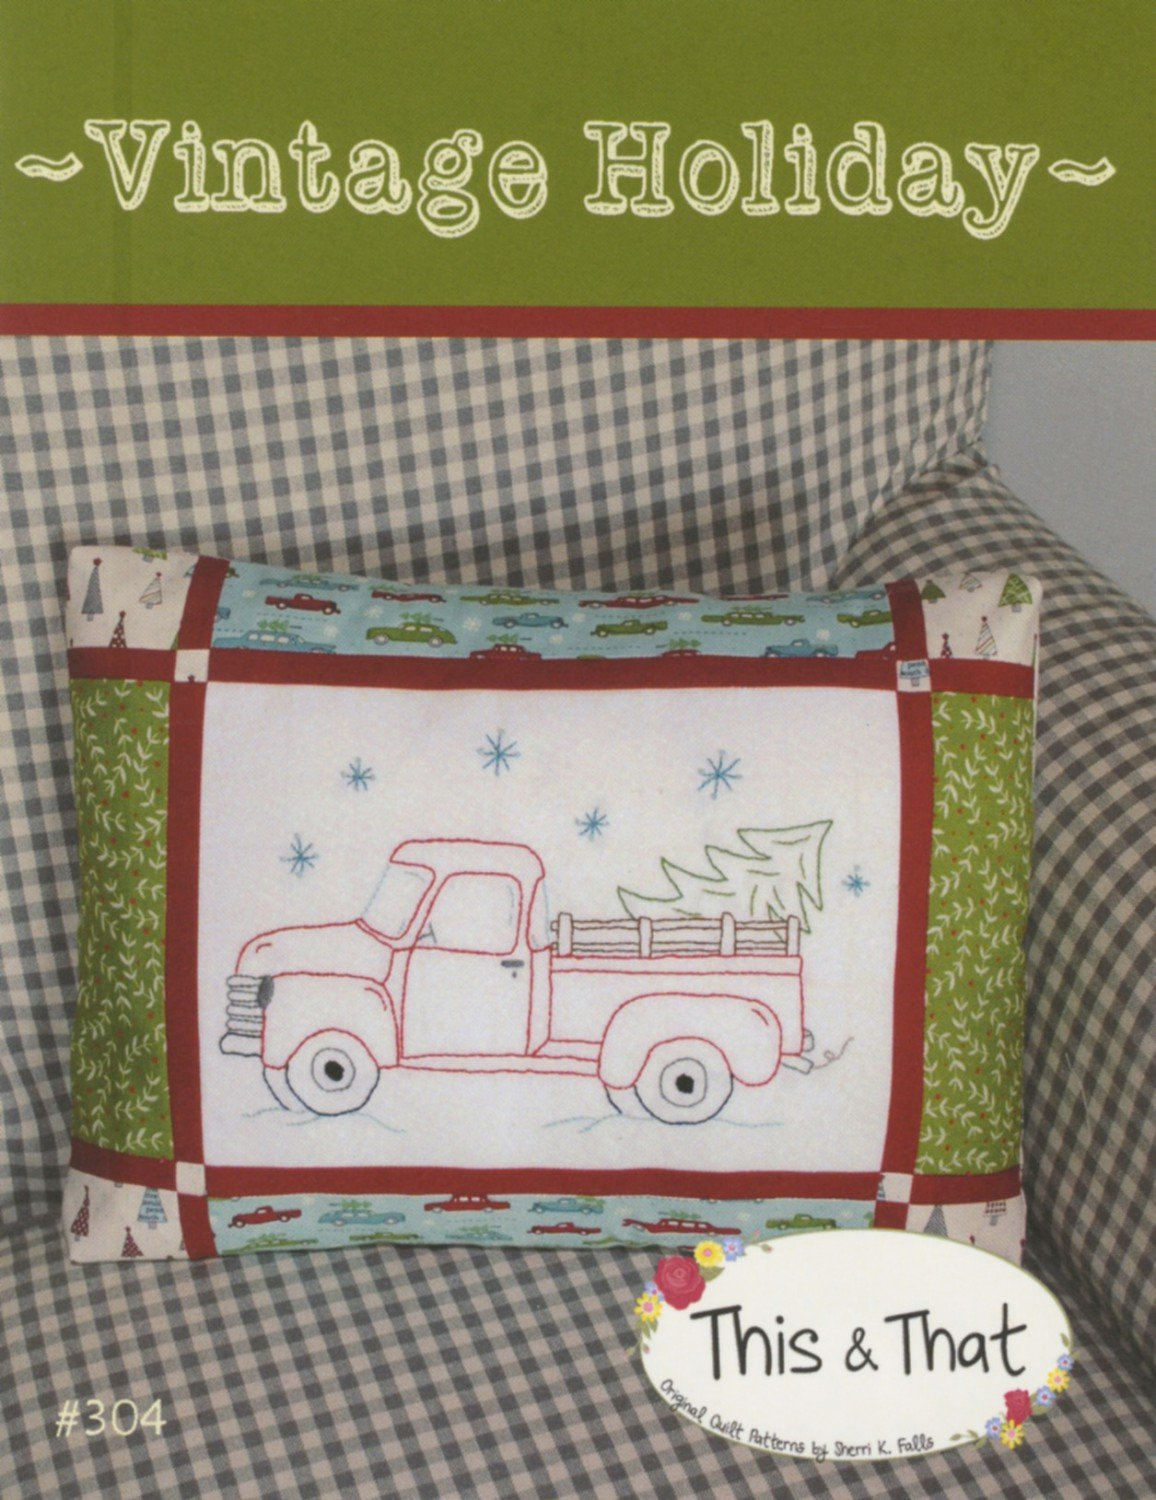 Vintage Holiday by This & That